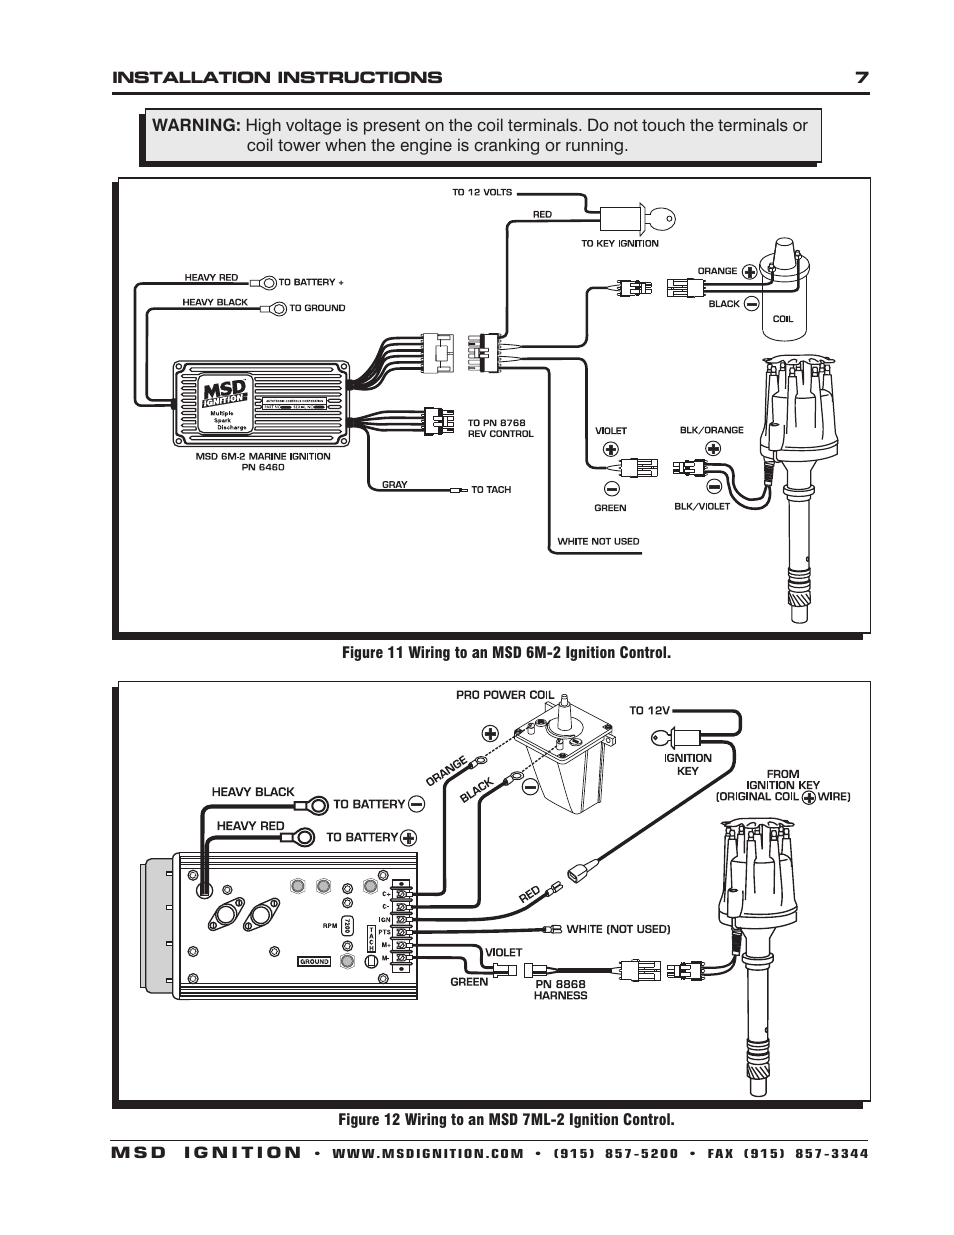 Wiring diagram for kc hilites piaa